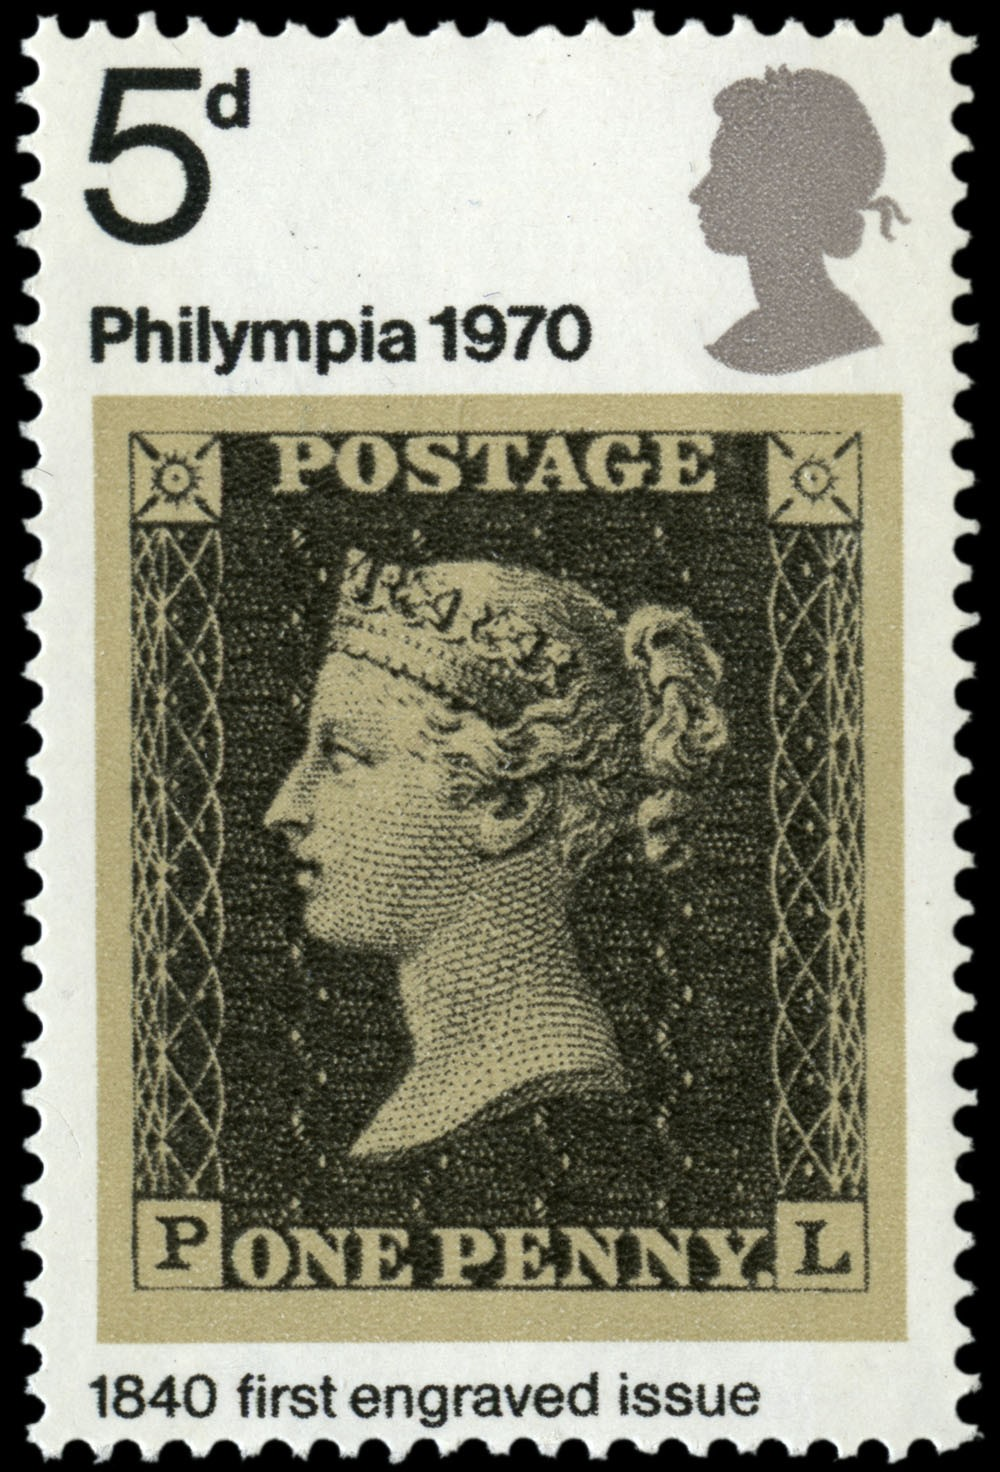 Special Stamps 50th anniversary Royal Mail Philympia